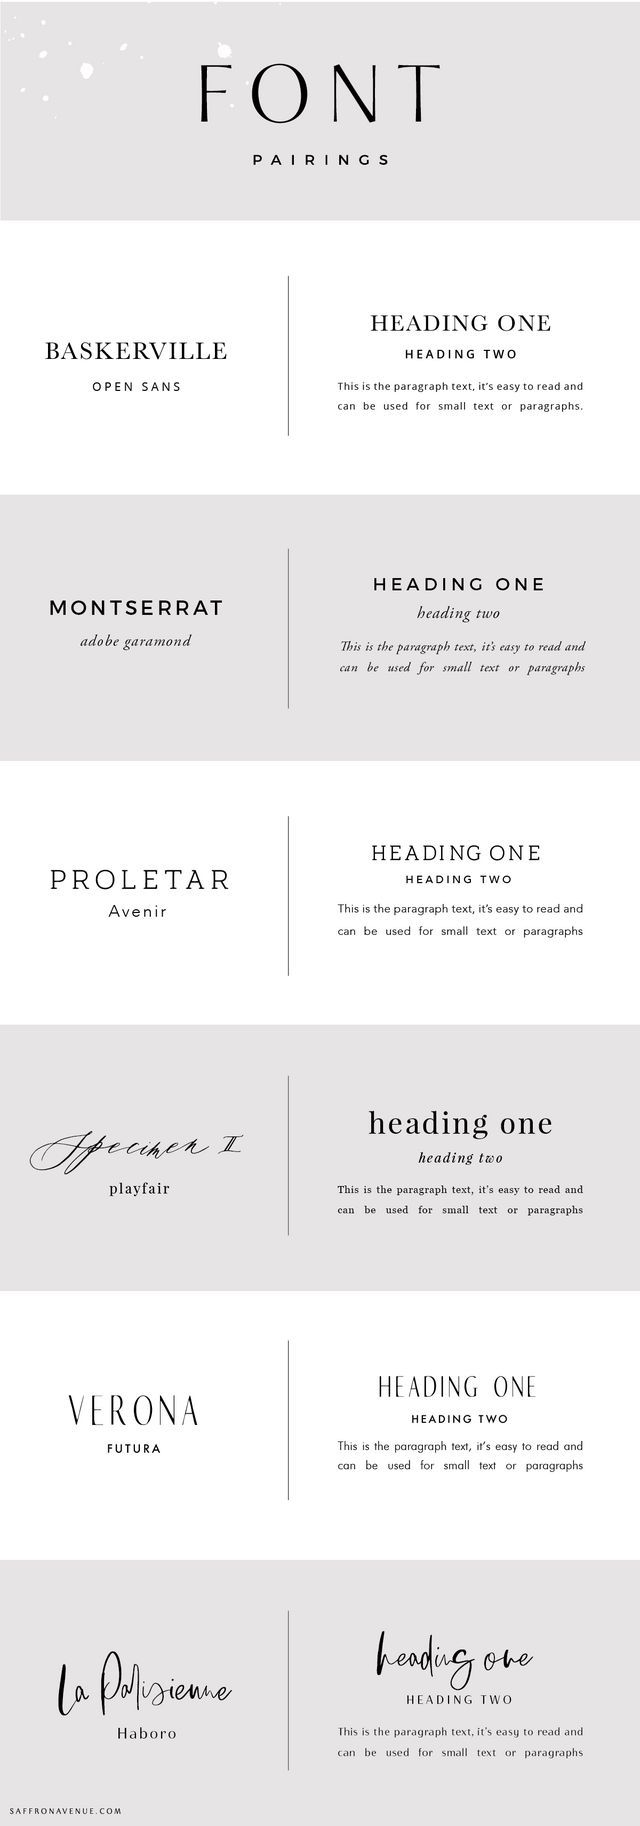 Font Pairings and How to Use Them in Your Brand (Saffron Avenue